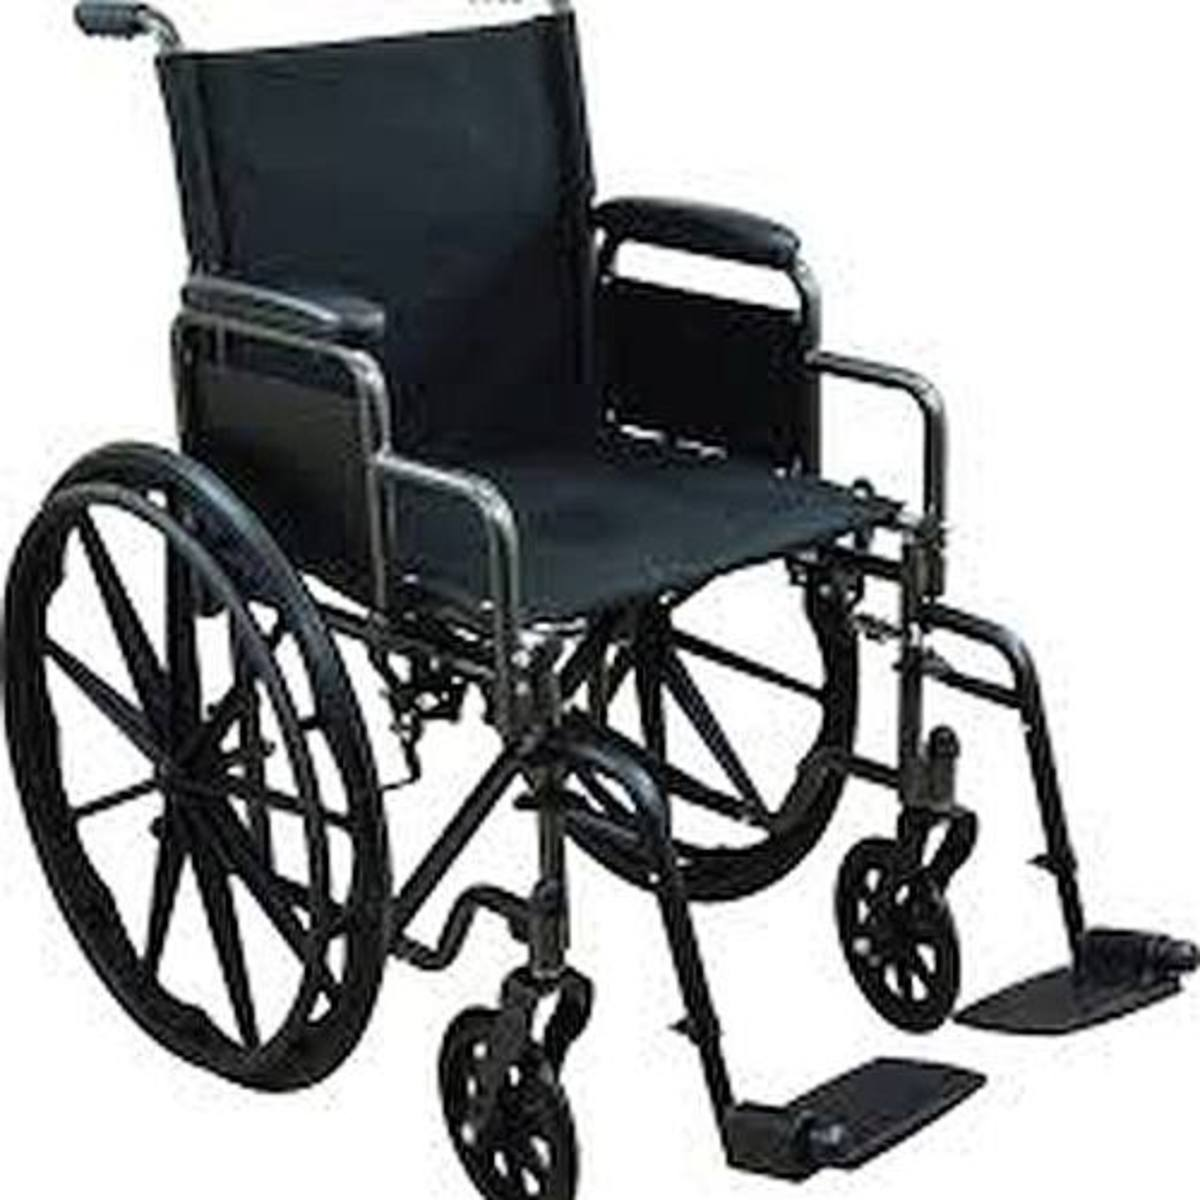 Travis was confined to a wheelchair.